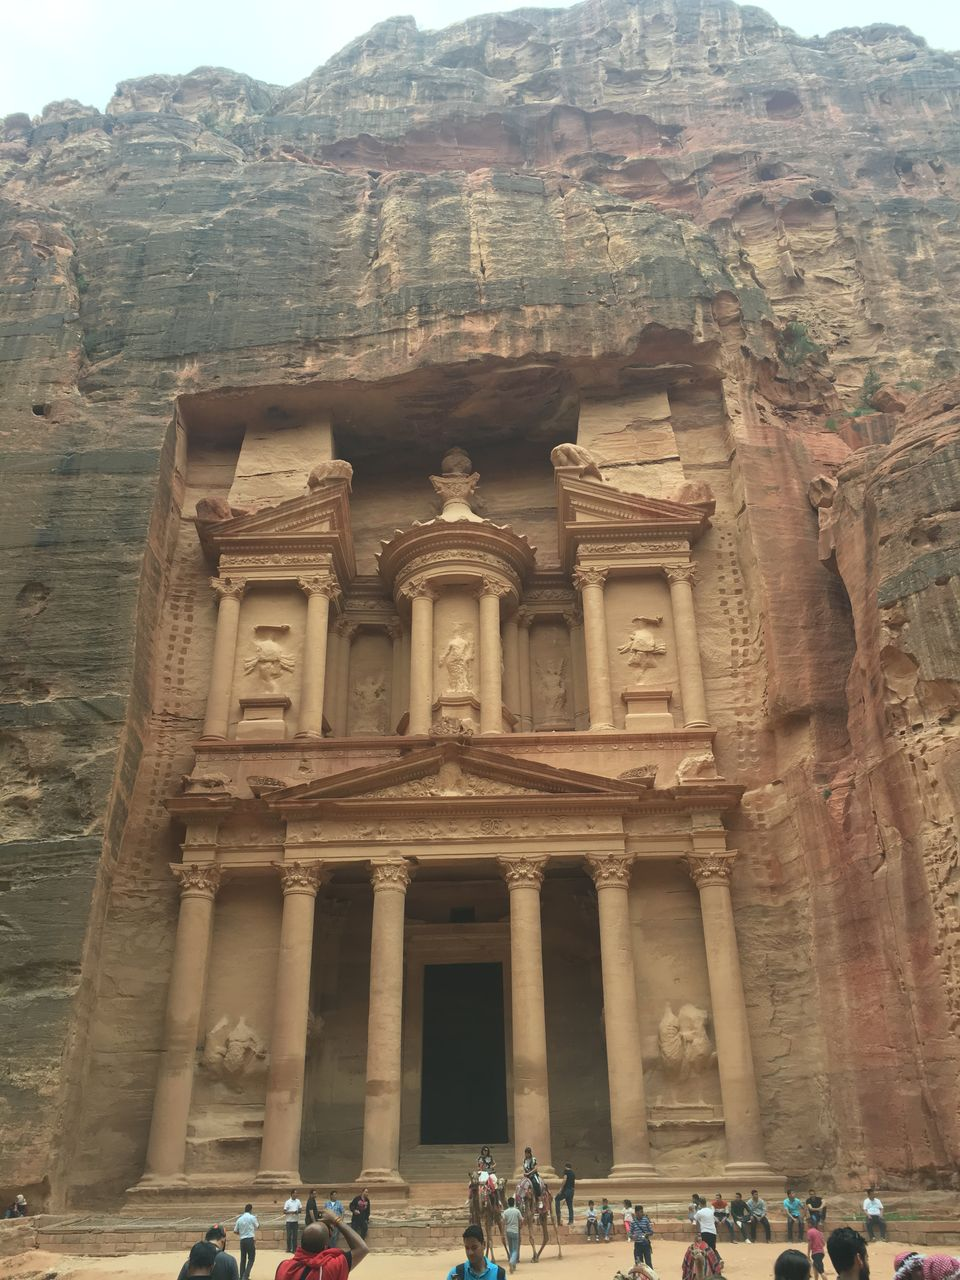 Wandering at the Wonders of the World.. the Lost City of Petra